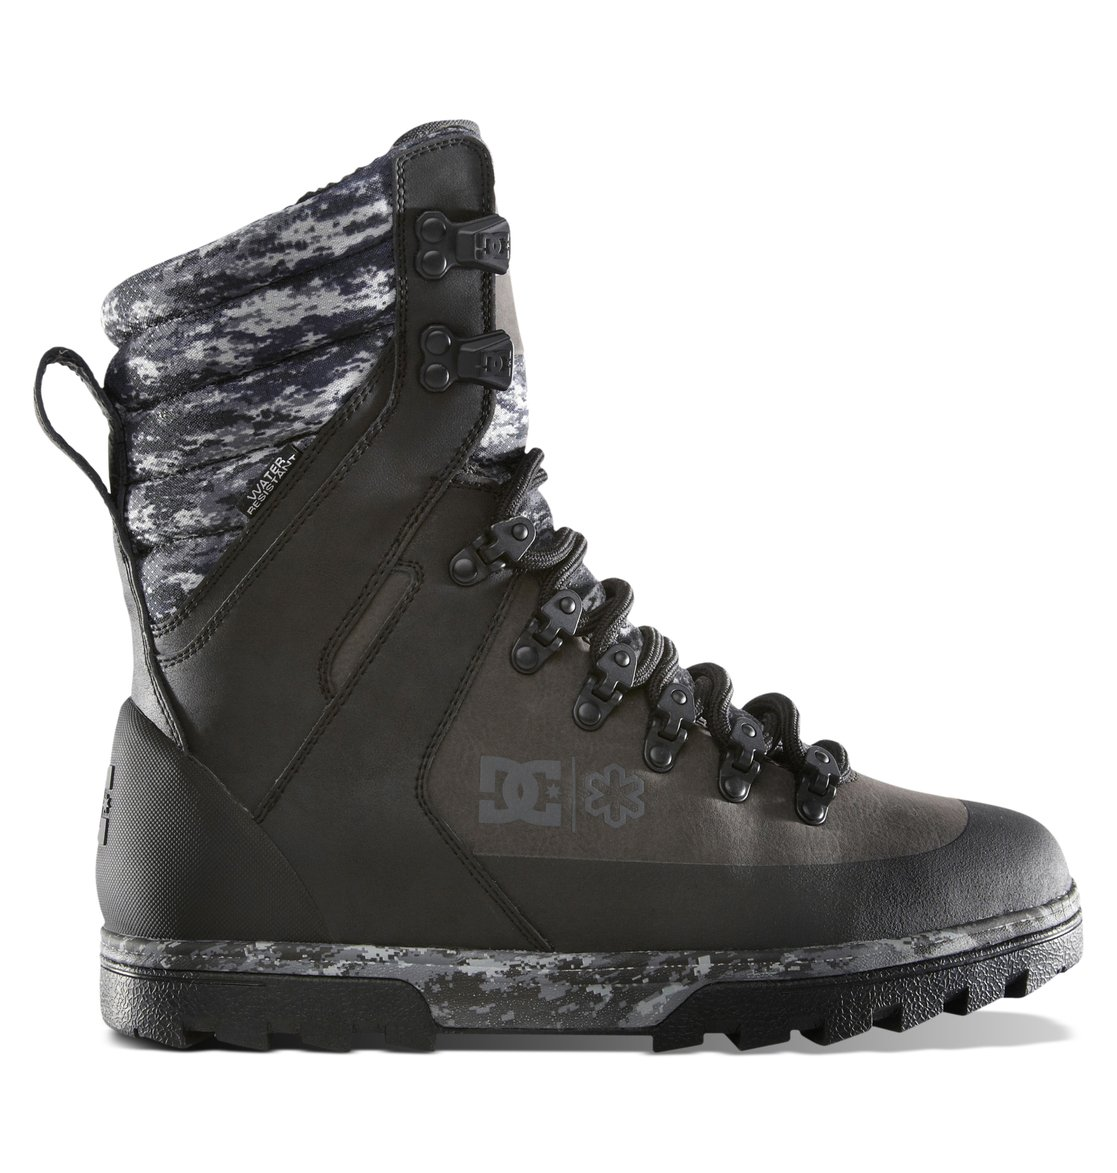 Men's Colter SPT Cold Weather Boot